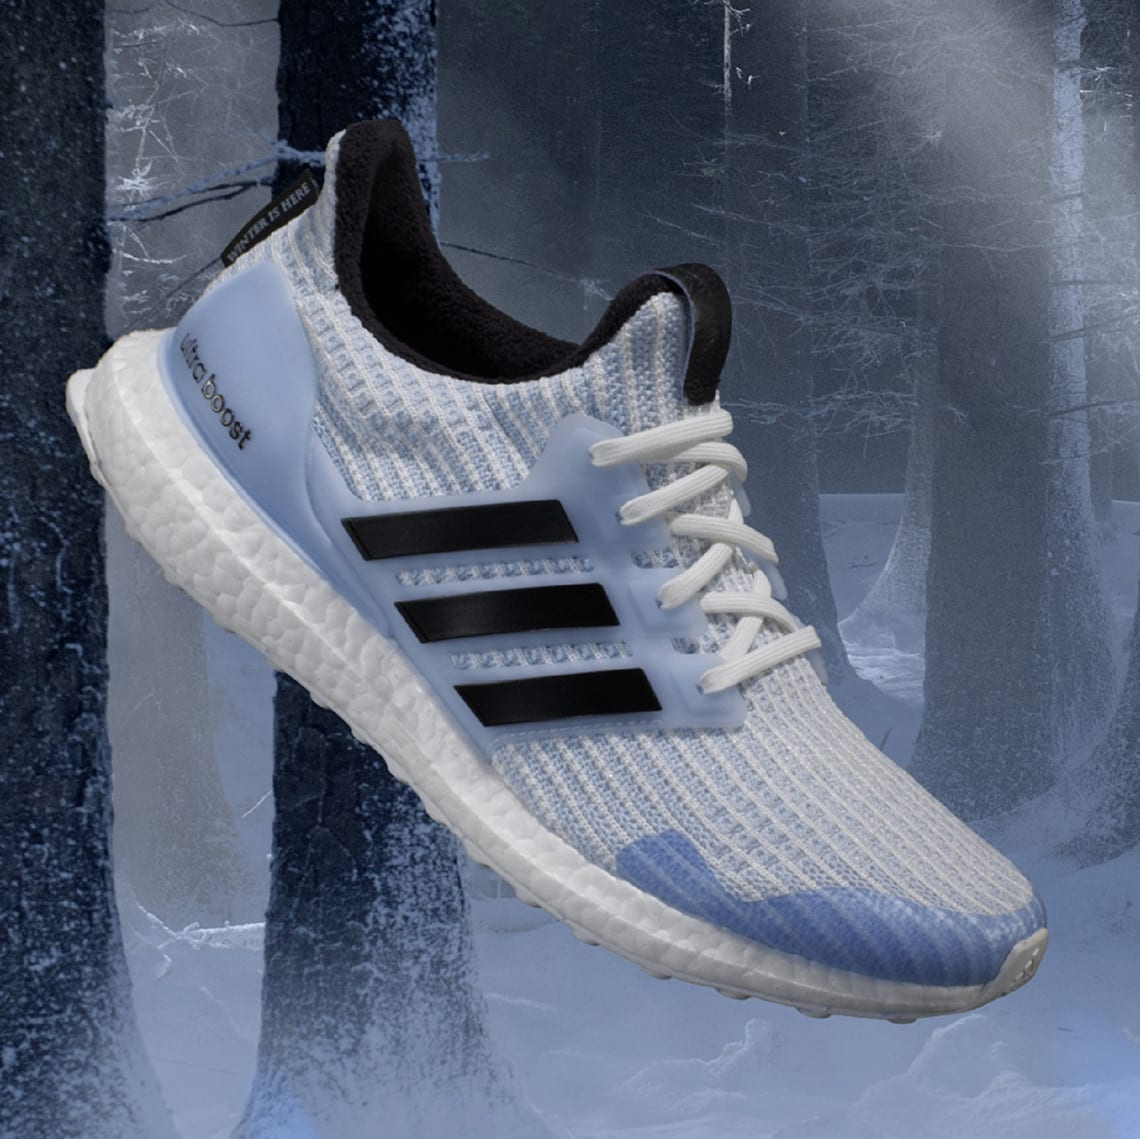 adidas new shoes launch off 60% - www